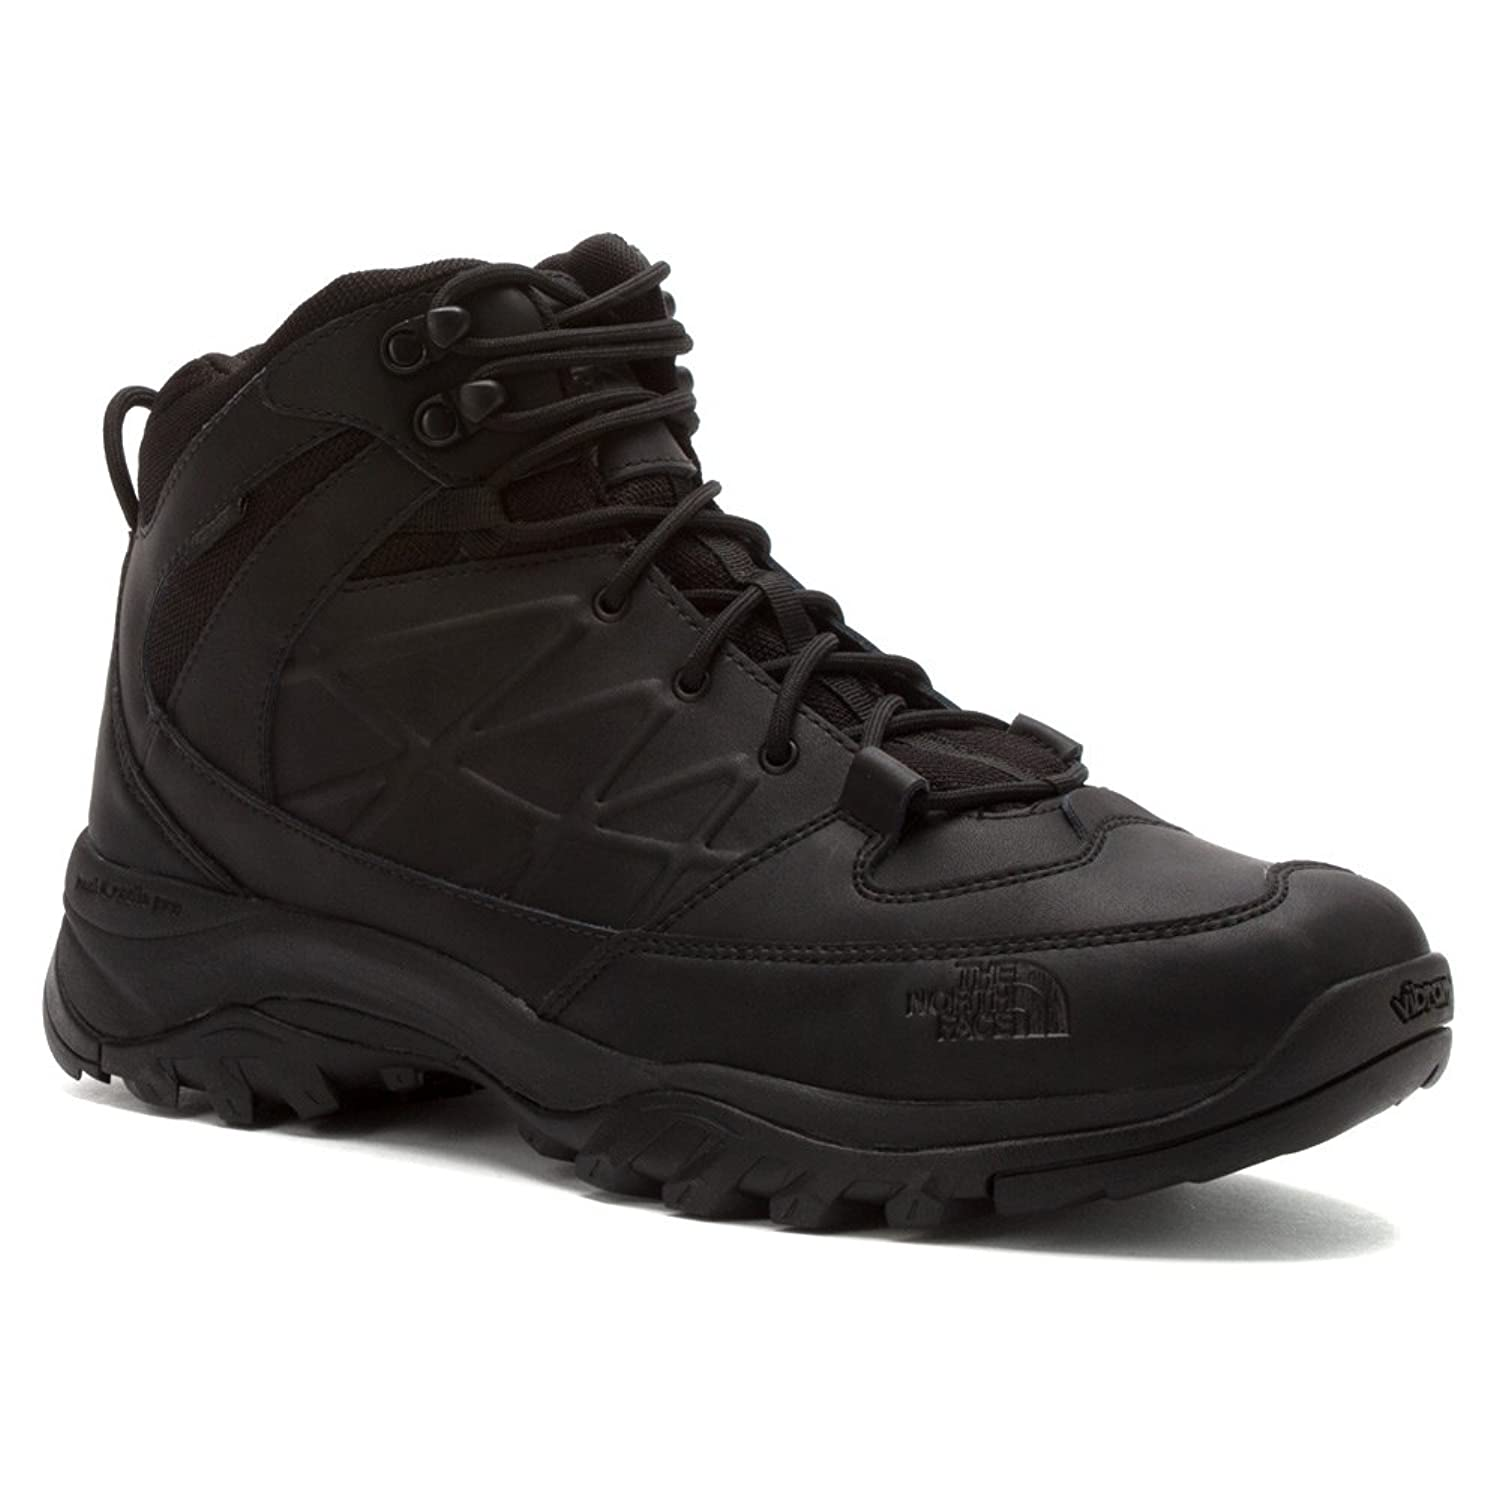 The North Face Men S Storm Mid Waterproof Hiking Shoes Review